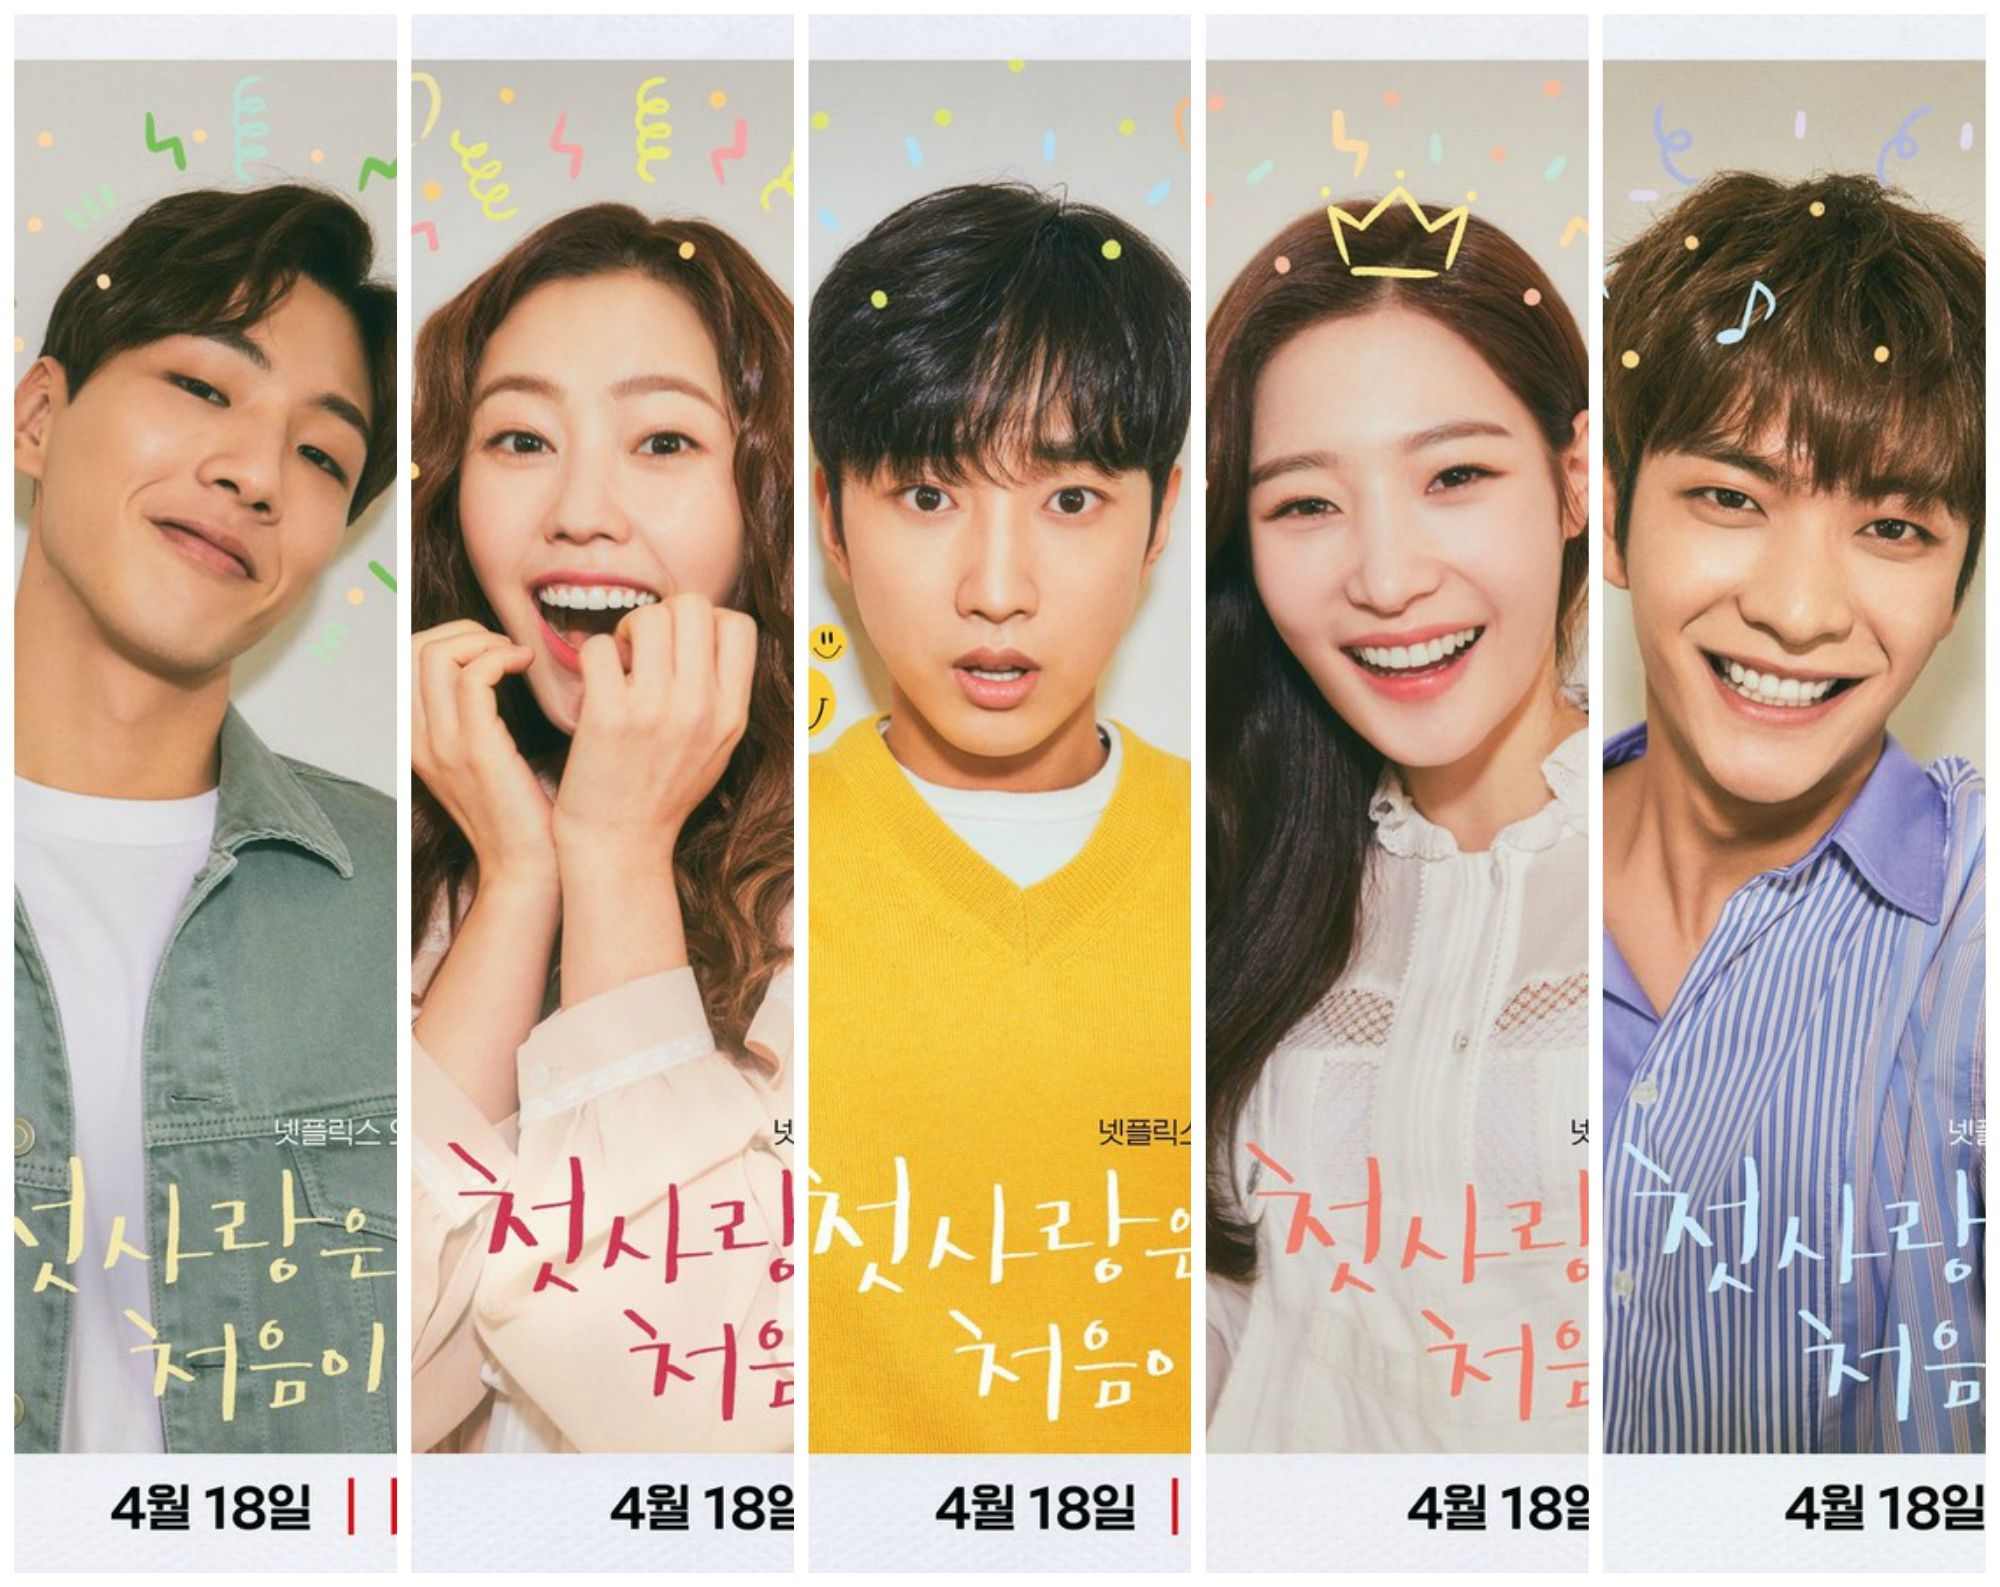 [K-Drama]: 'My First First Love'season 2 by Ji Soo, Jin Young (B1A4), Kang Tae Oh and Chae Yeon (DIA) confirms will air on Netflix